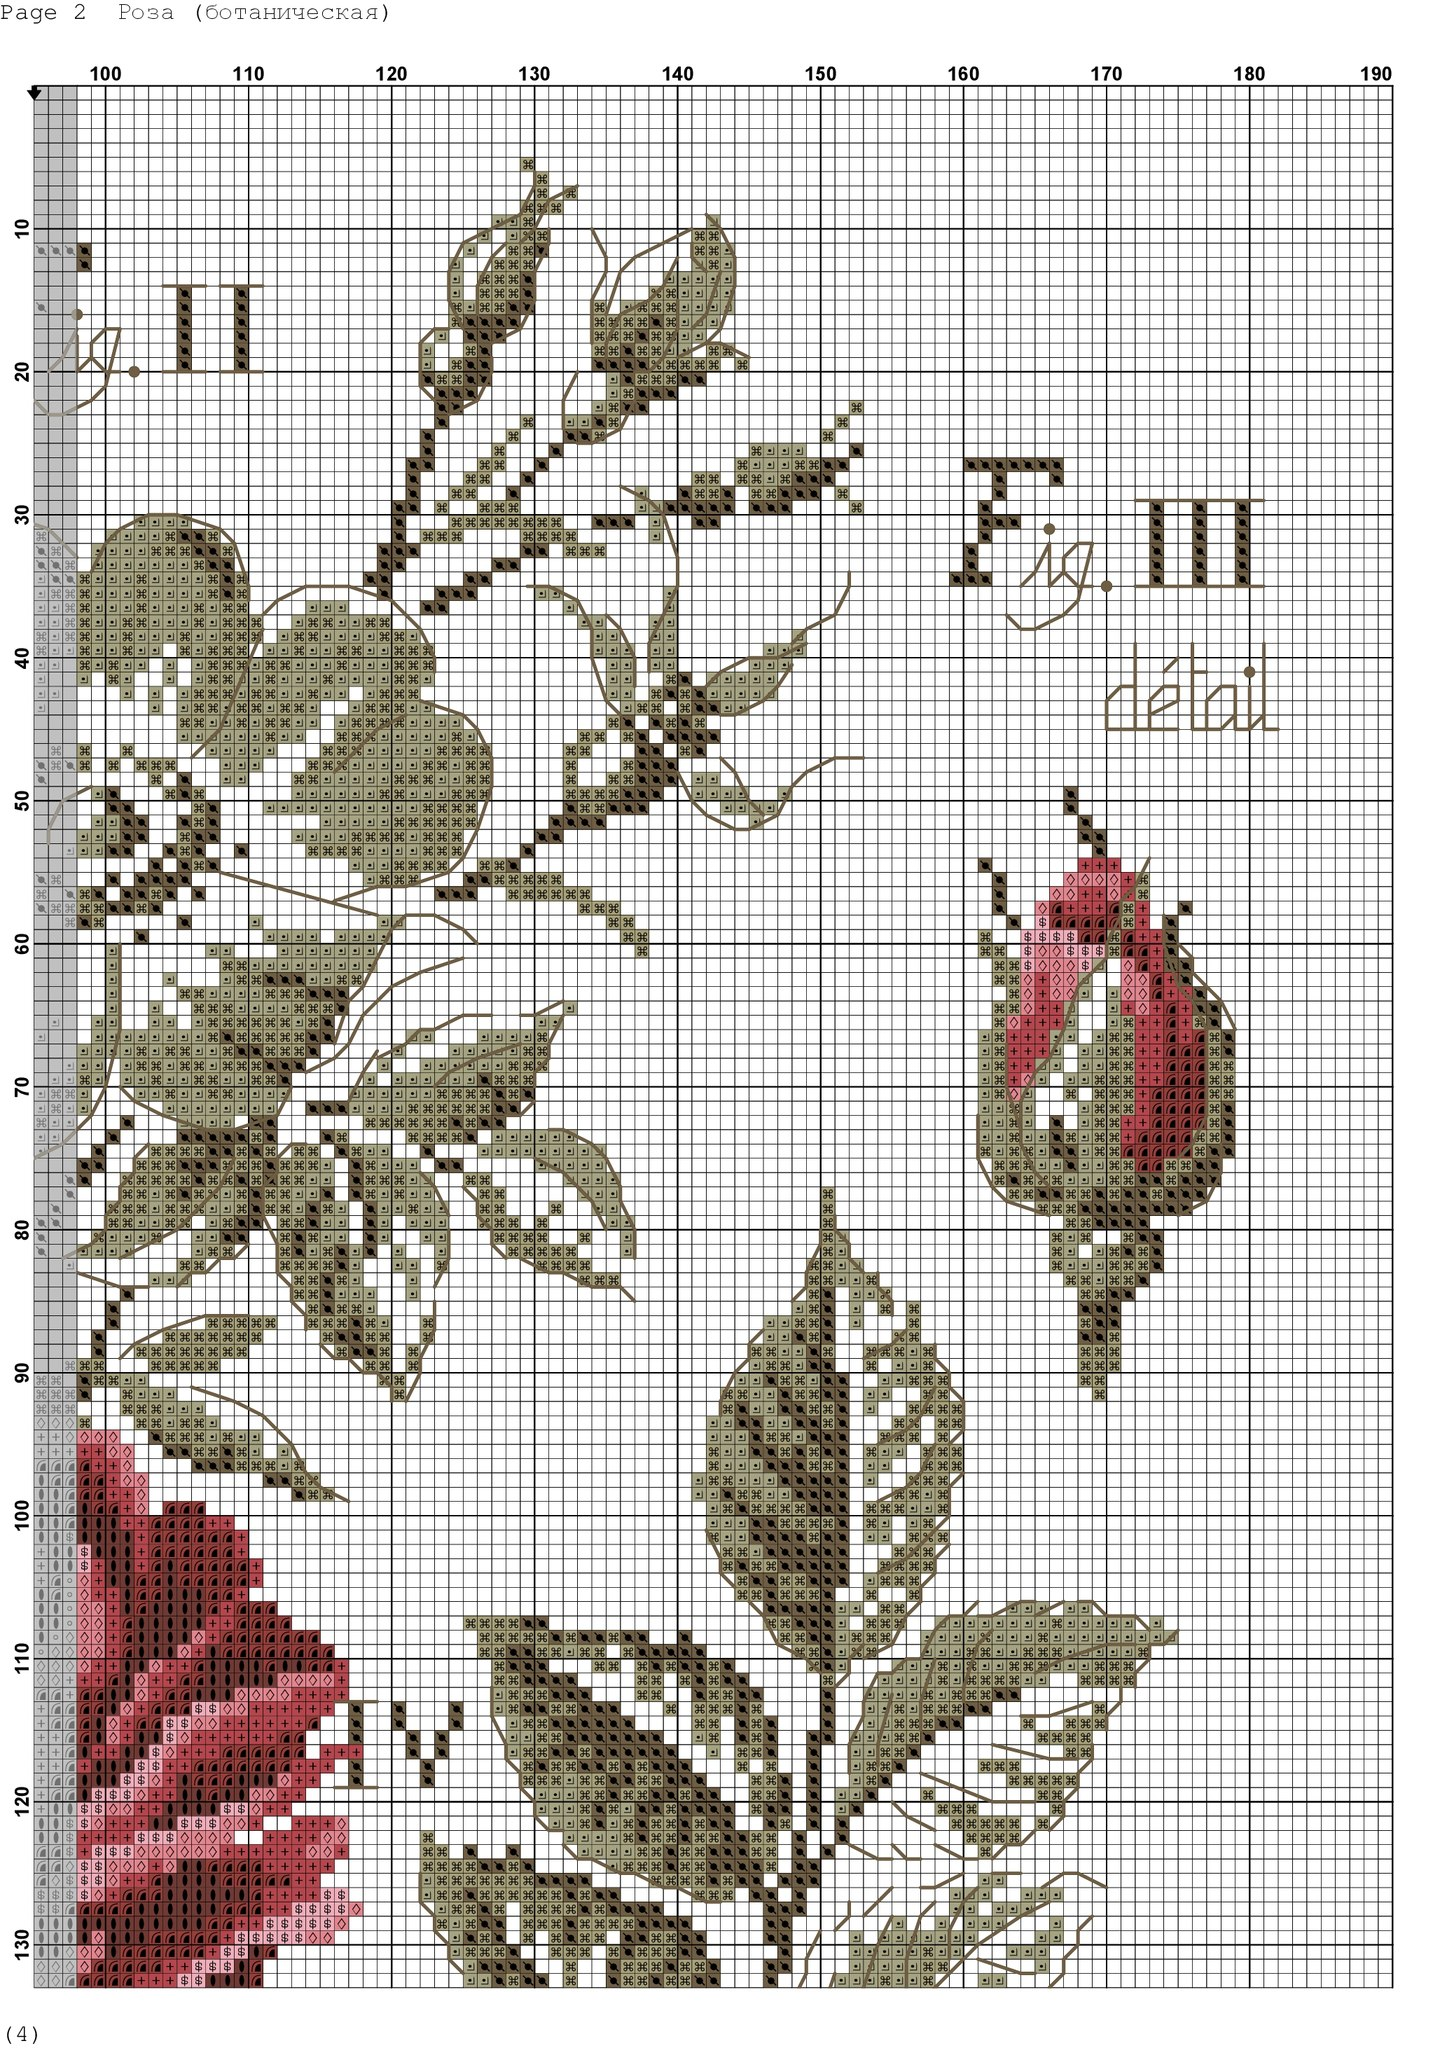 quaker village is the title of this cross stitch pattern